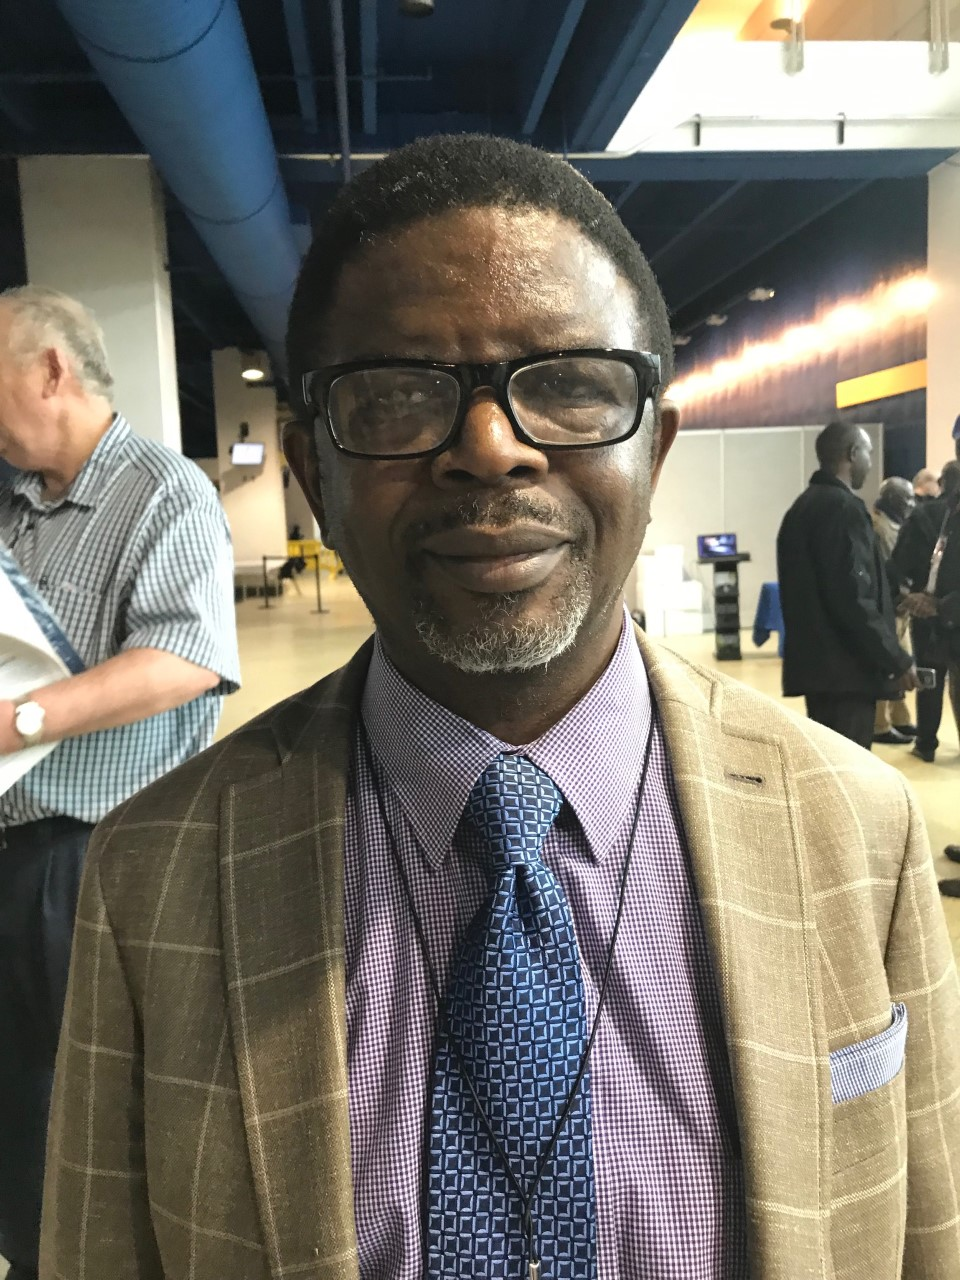 The Rev. Jacob Maforo drove nine hours from his home near the Kansas-Oklahoma border to be an observer at the 2019 General Conference. Some 3,000 observers have registered for the special legislative session, underway through Feb. 26 at the America's Center in St. Louis. Photo by Sam Hodges, UMNS.